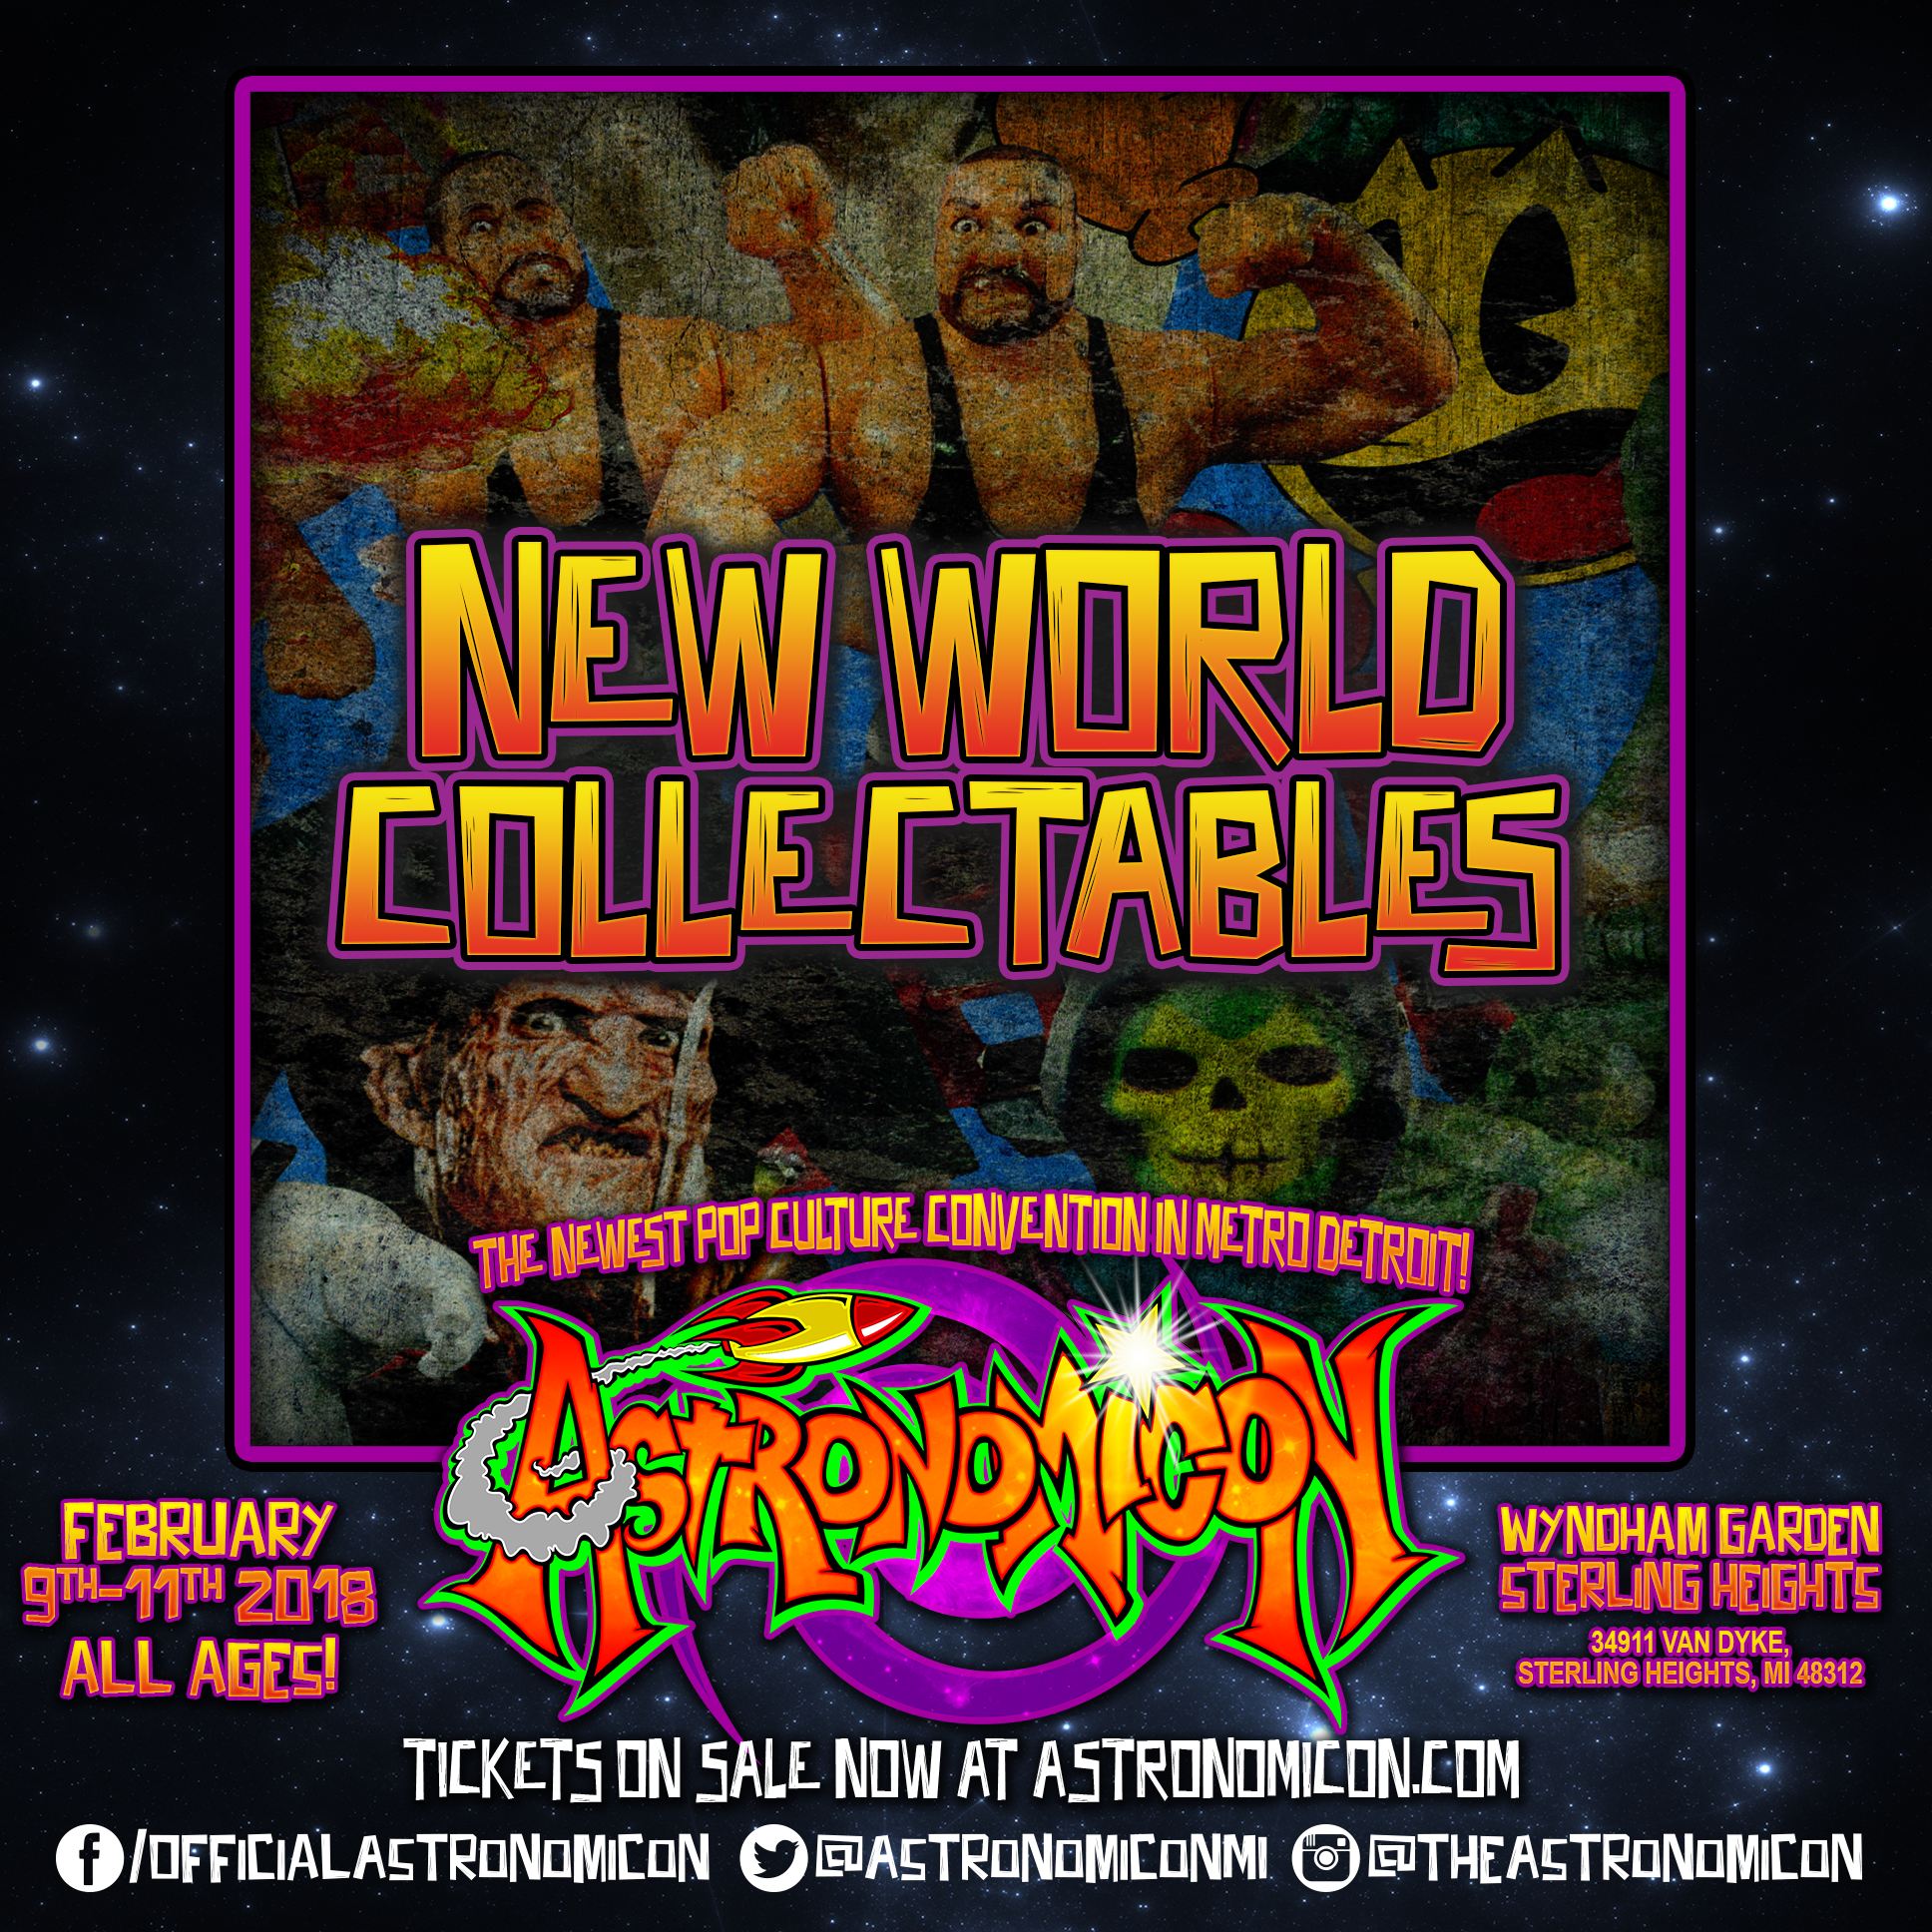 New World Collectables